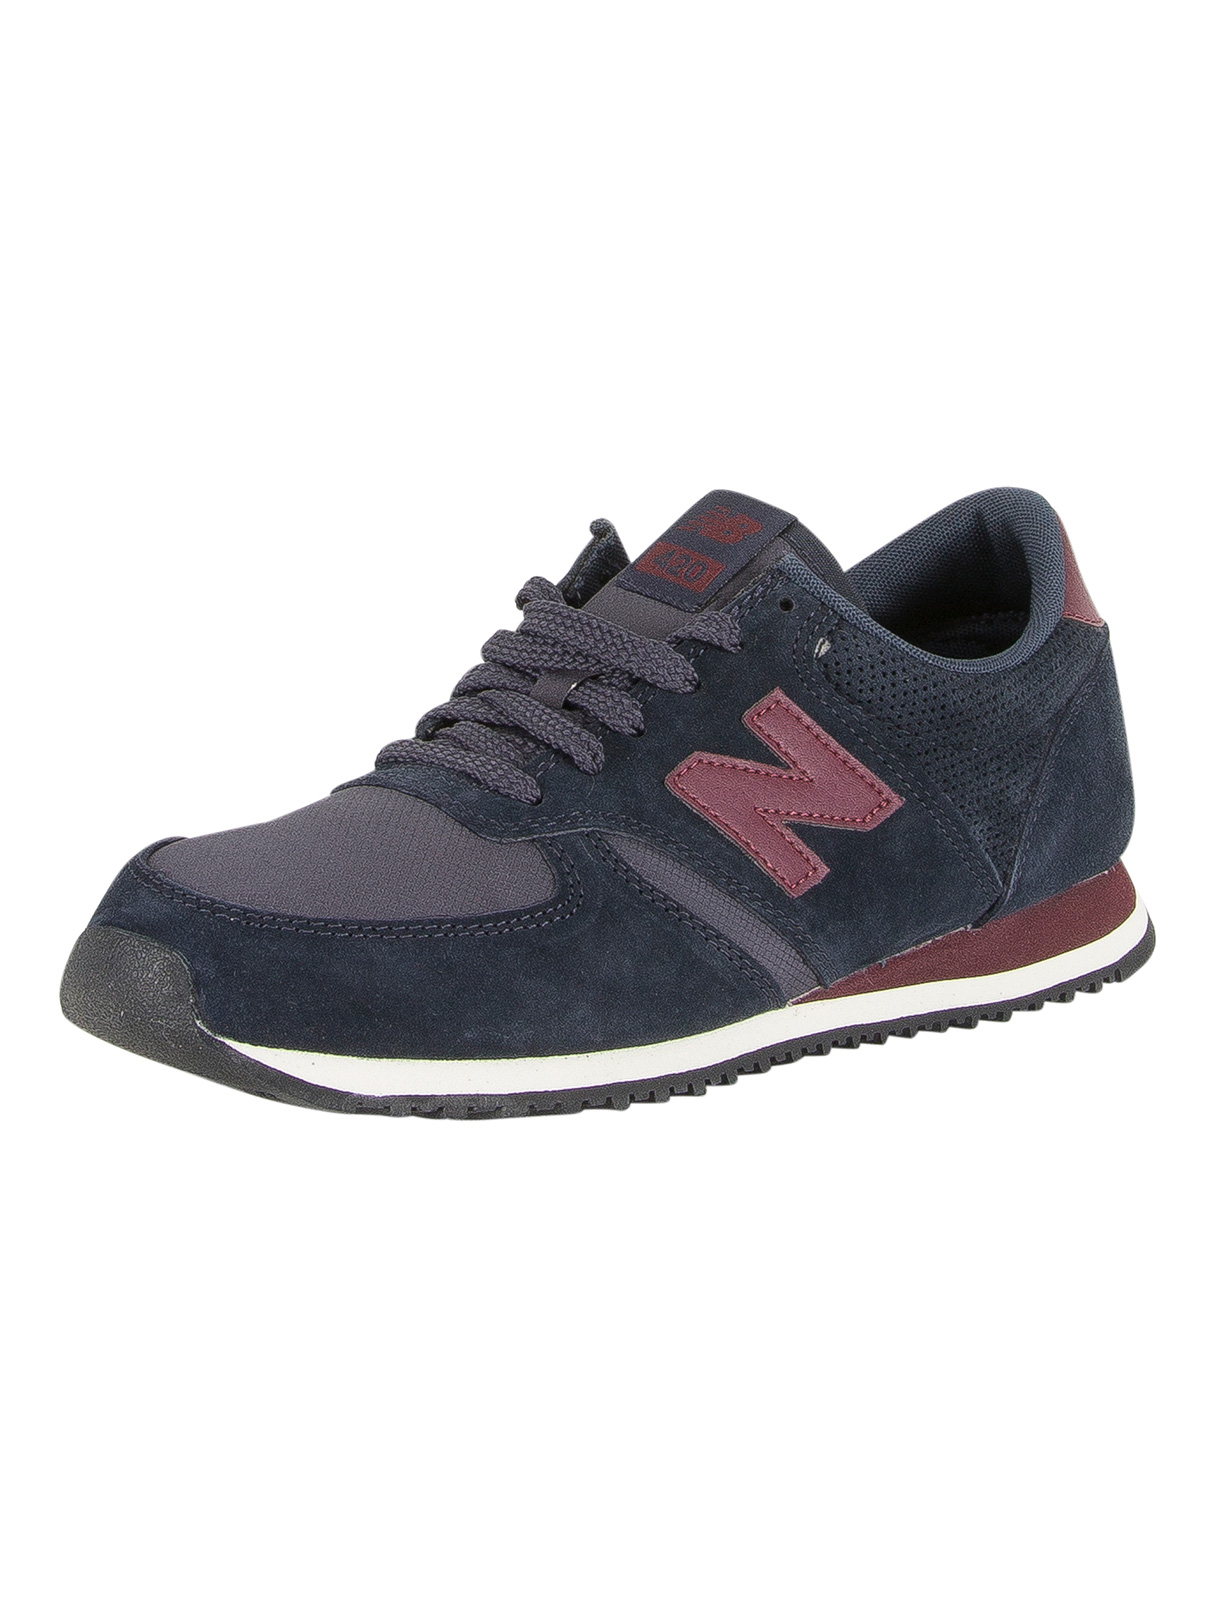 new balance 420 burgundy navy